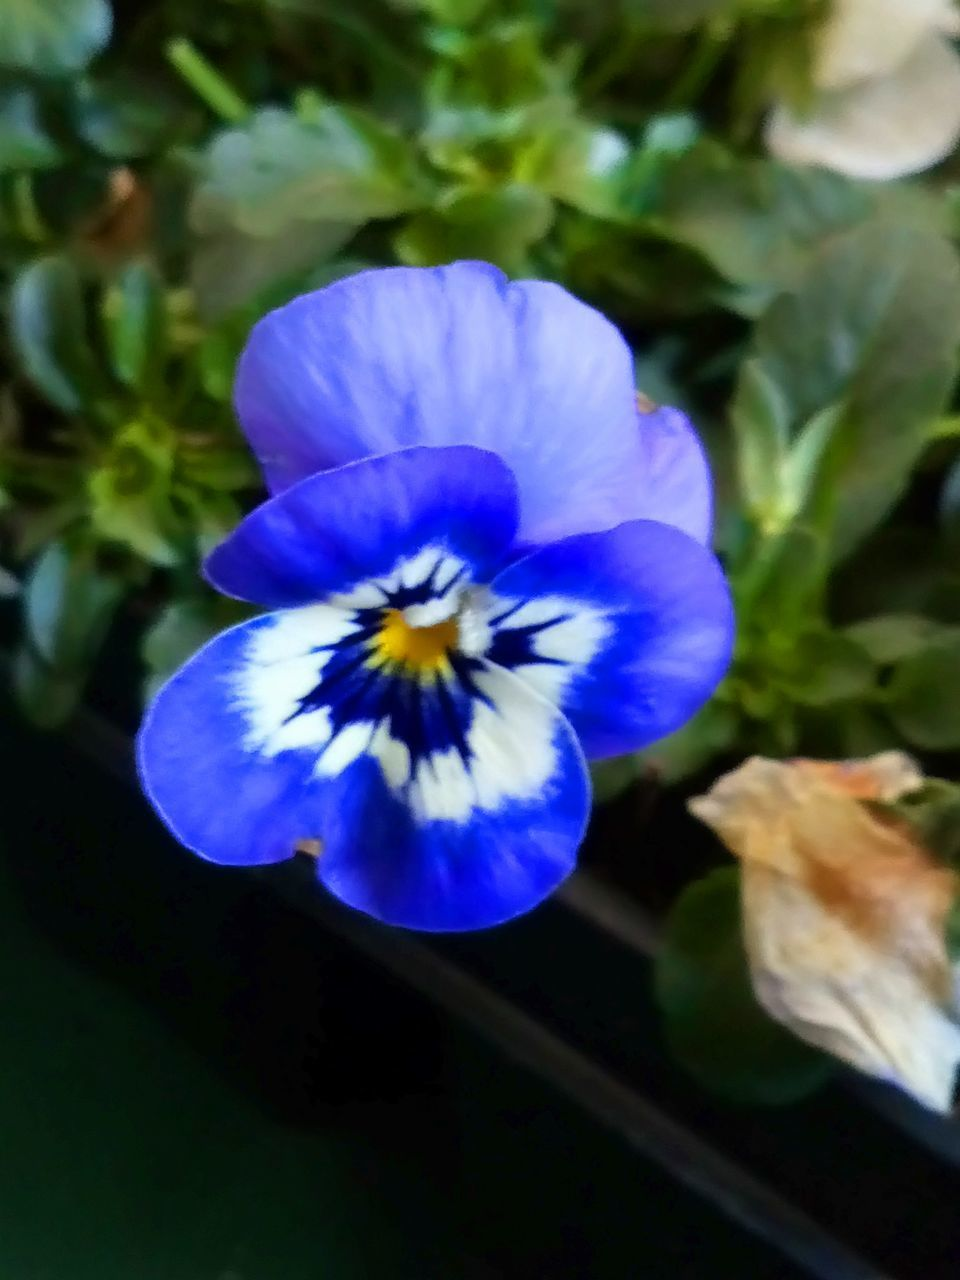 flowering plant, flower, vulnerability, fragility, petal, freshness, plant, beauty in nature, flower head, close-up, growth, inflorescence, blue, nature, purple, pansy, no people, day, focus on foreground, pollen